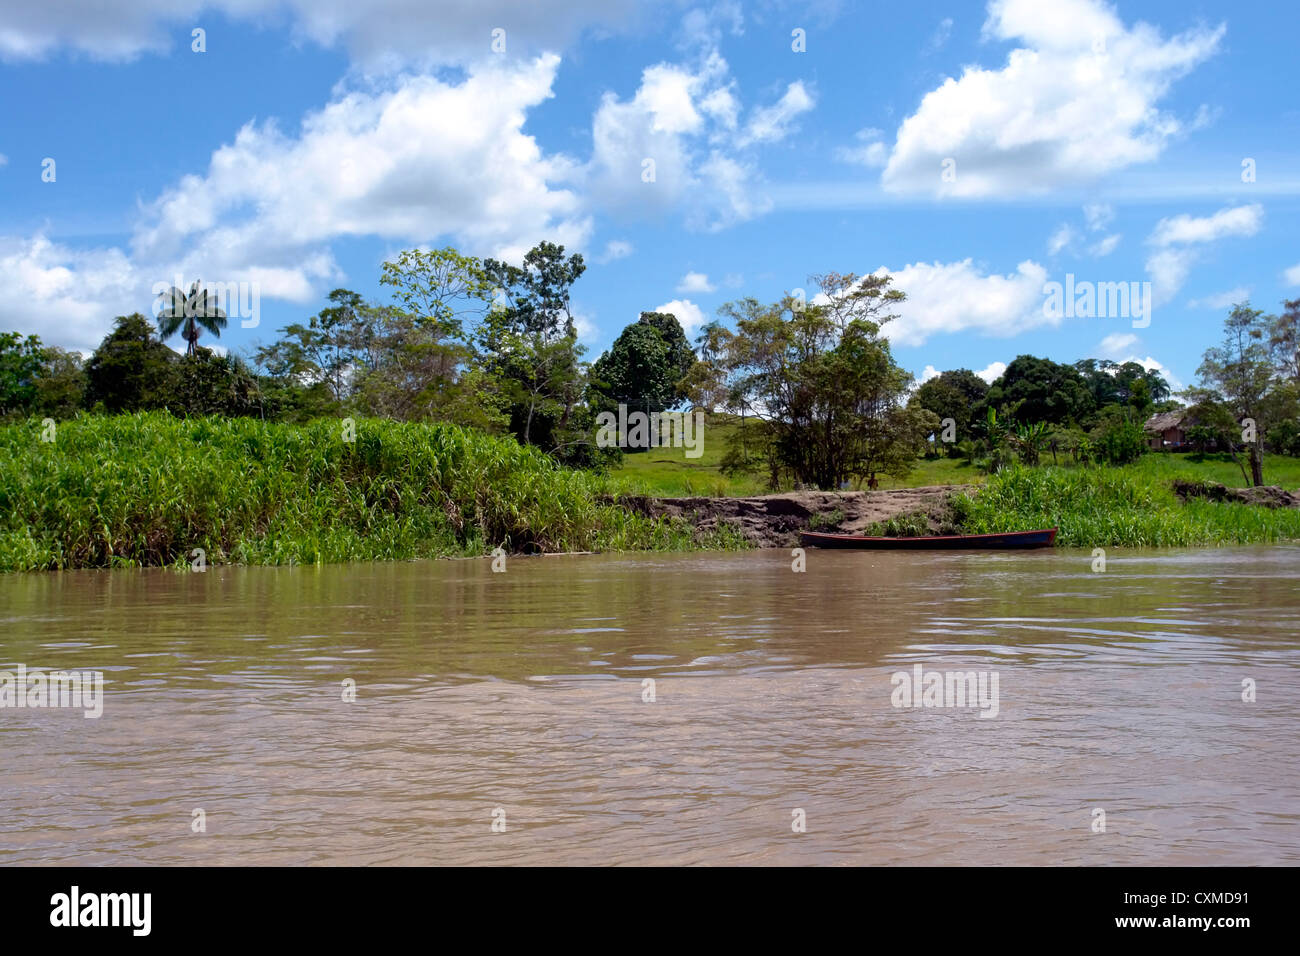 Amazon river margin landscape & Indian community boat pear Stock Photo